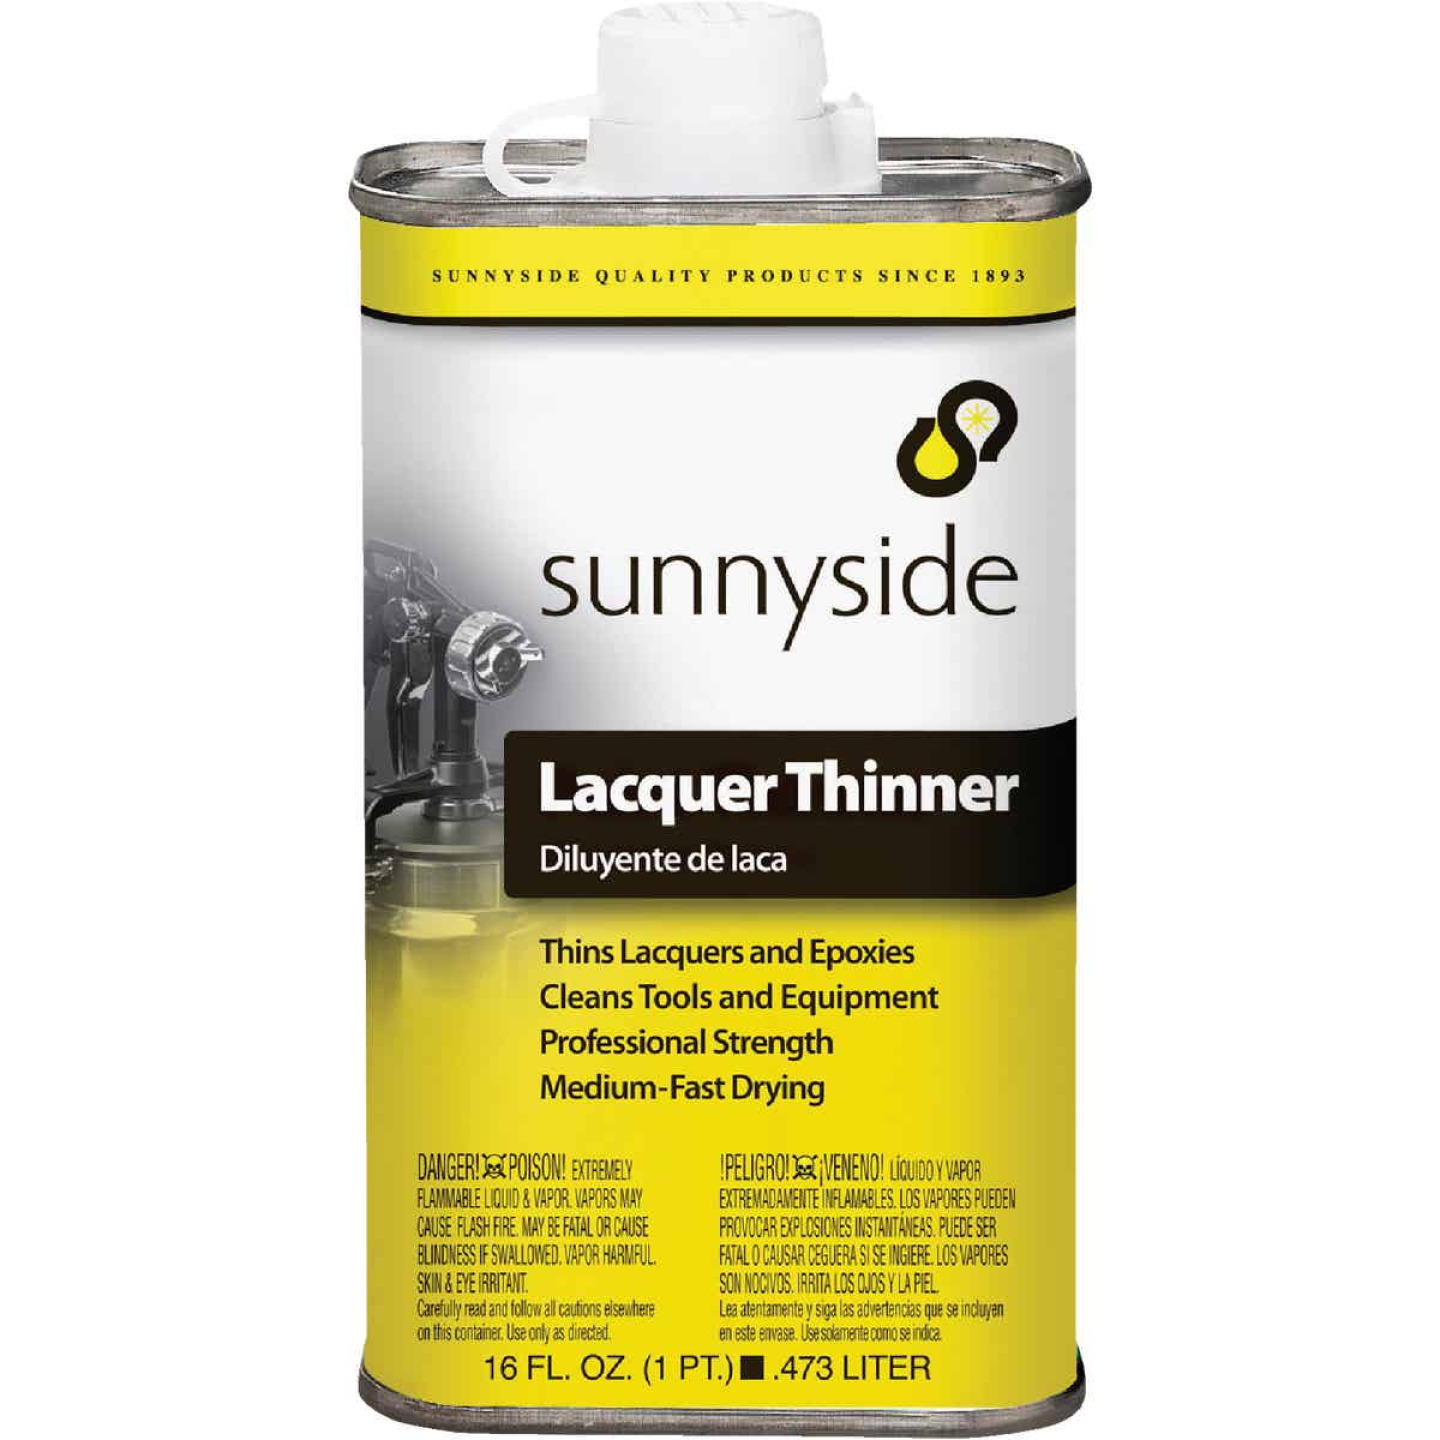 Sunnyside Lacquer Thinner, Pint Image 1